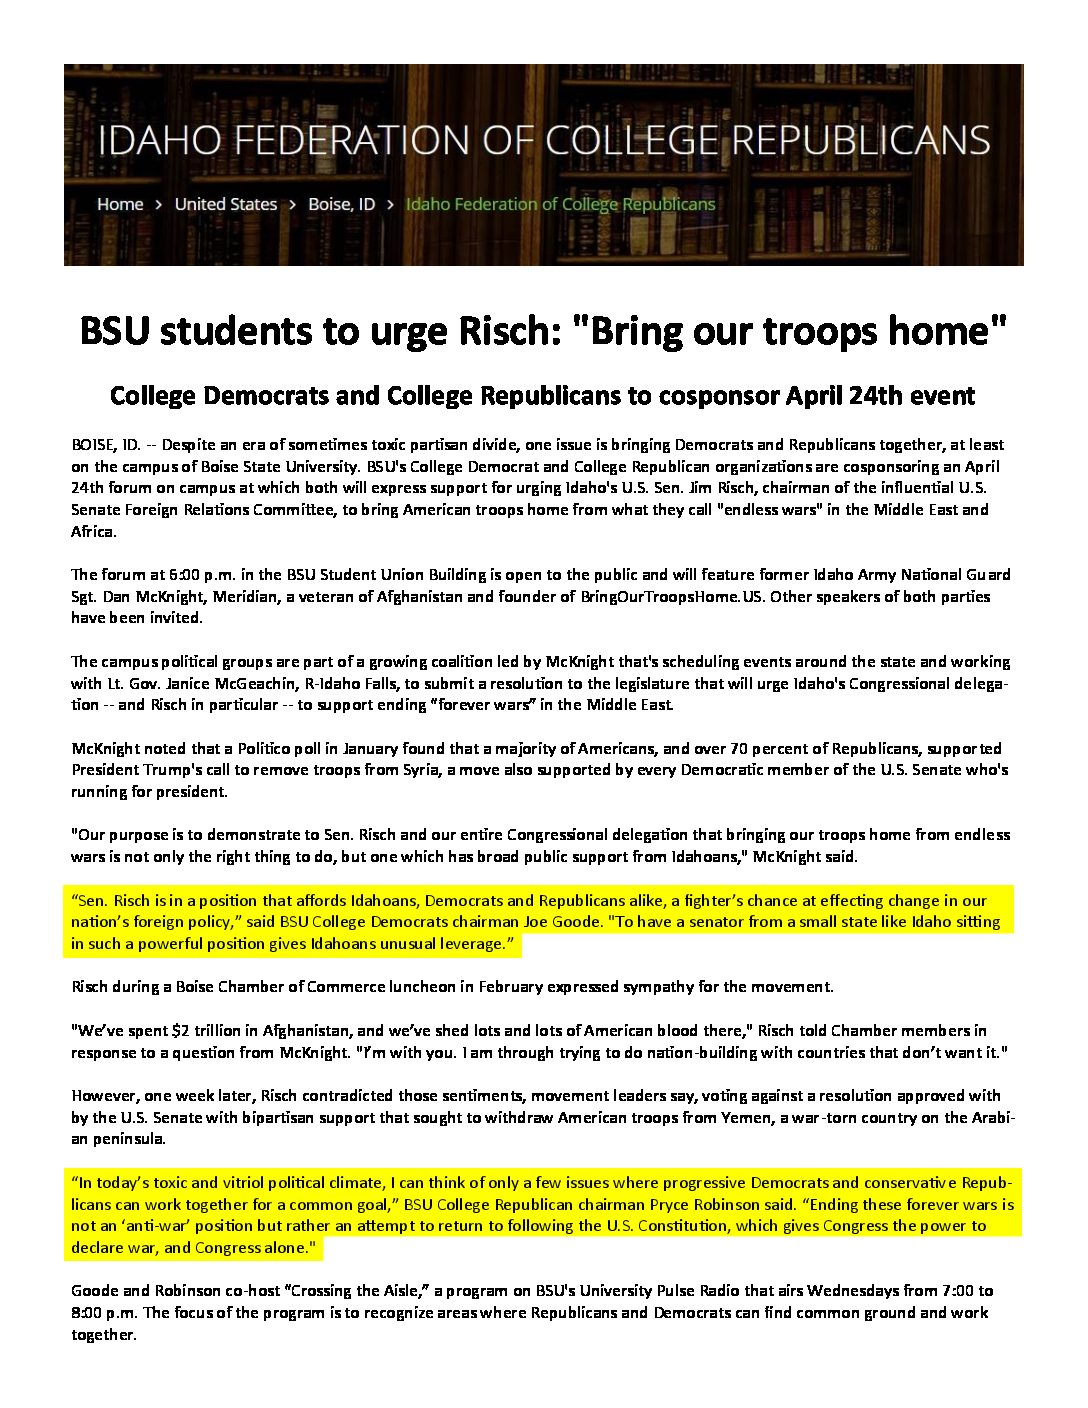 College Republicans – BSU students to urge Risch _Bring our troops home_